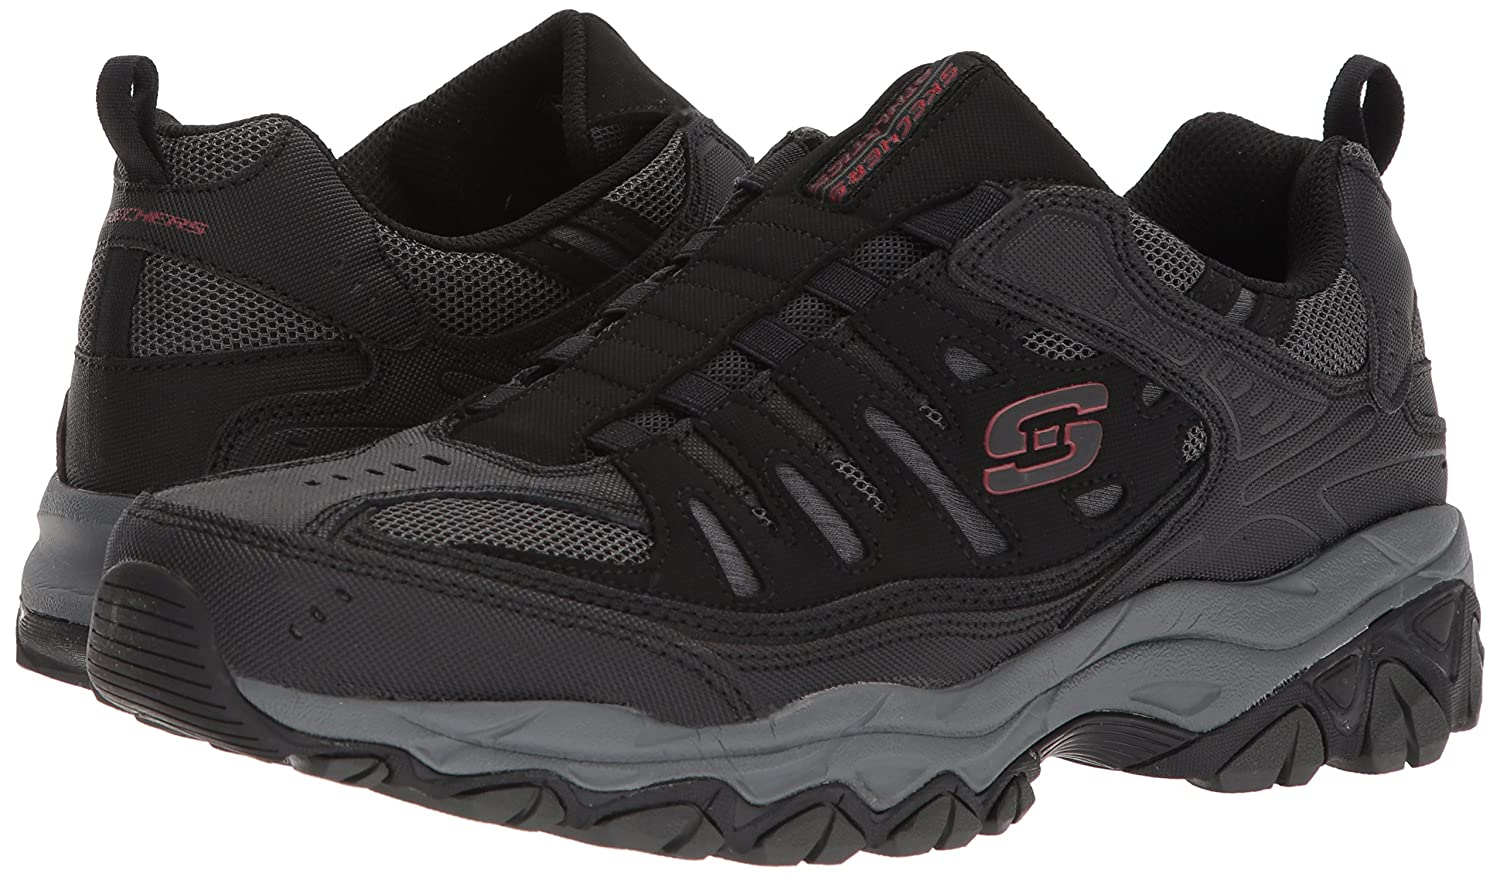 Skechers-Afterburn-Memory-Foam-M-Fit-Men-039-s-Sport-After-Burn-Sneakers-Shoes thumbnail 16